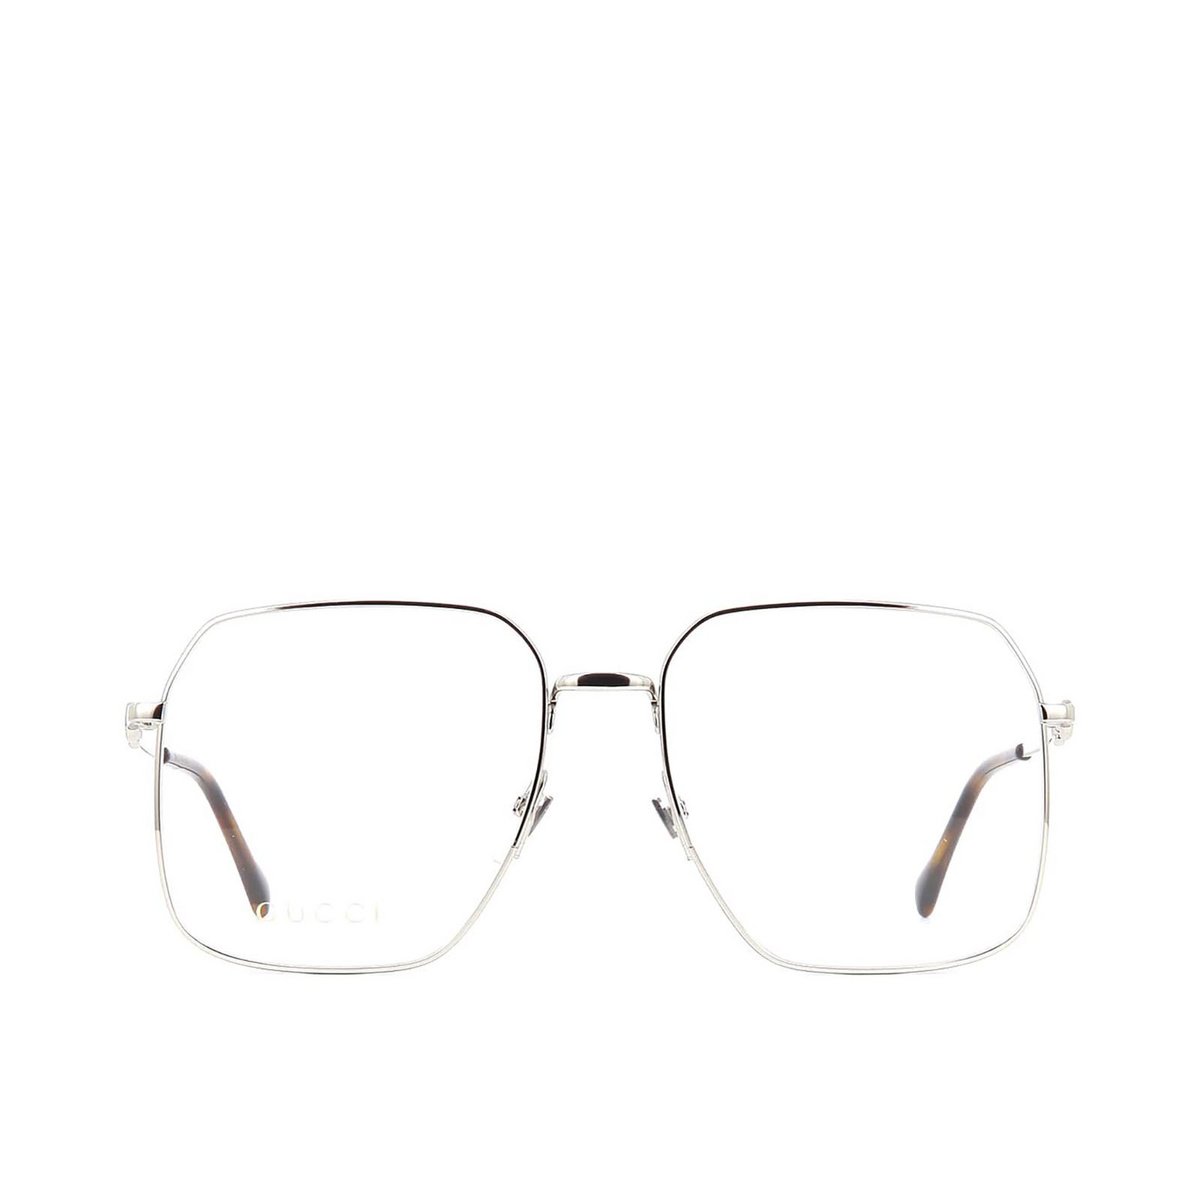 Gucci® Square Eyeglasses: GG0952O color Silver 003 - front view.